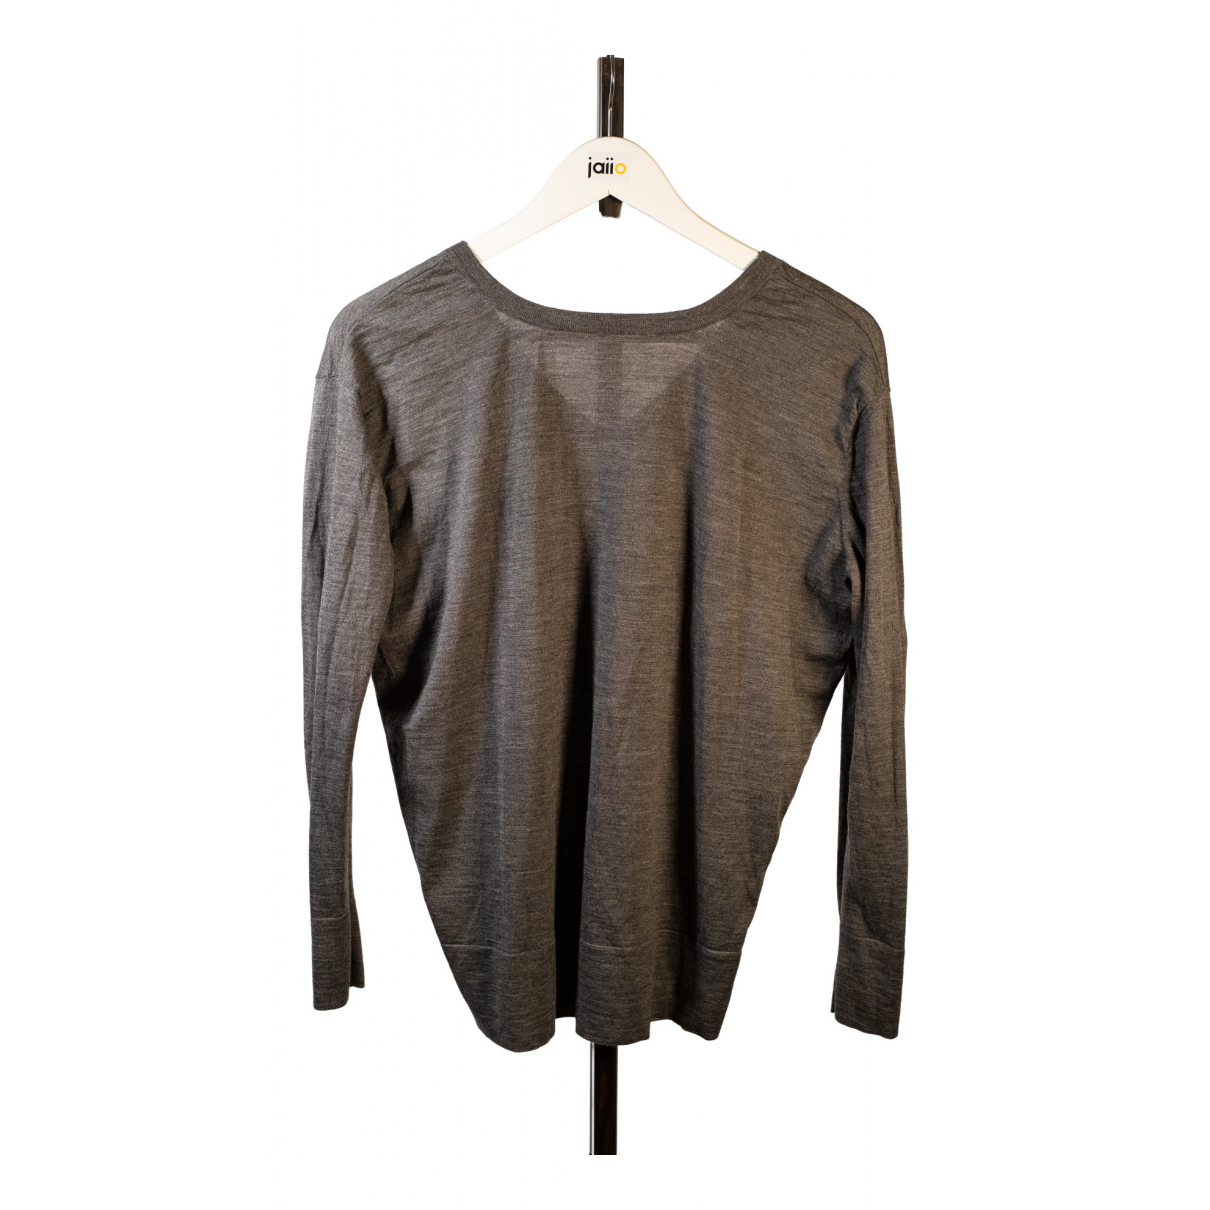 Paul & Joe \N Grey Wool Knitwear for Women S International